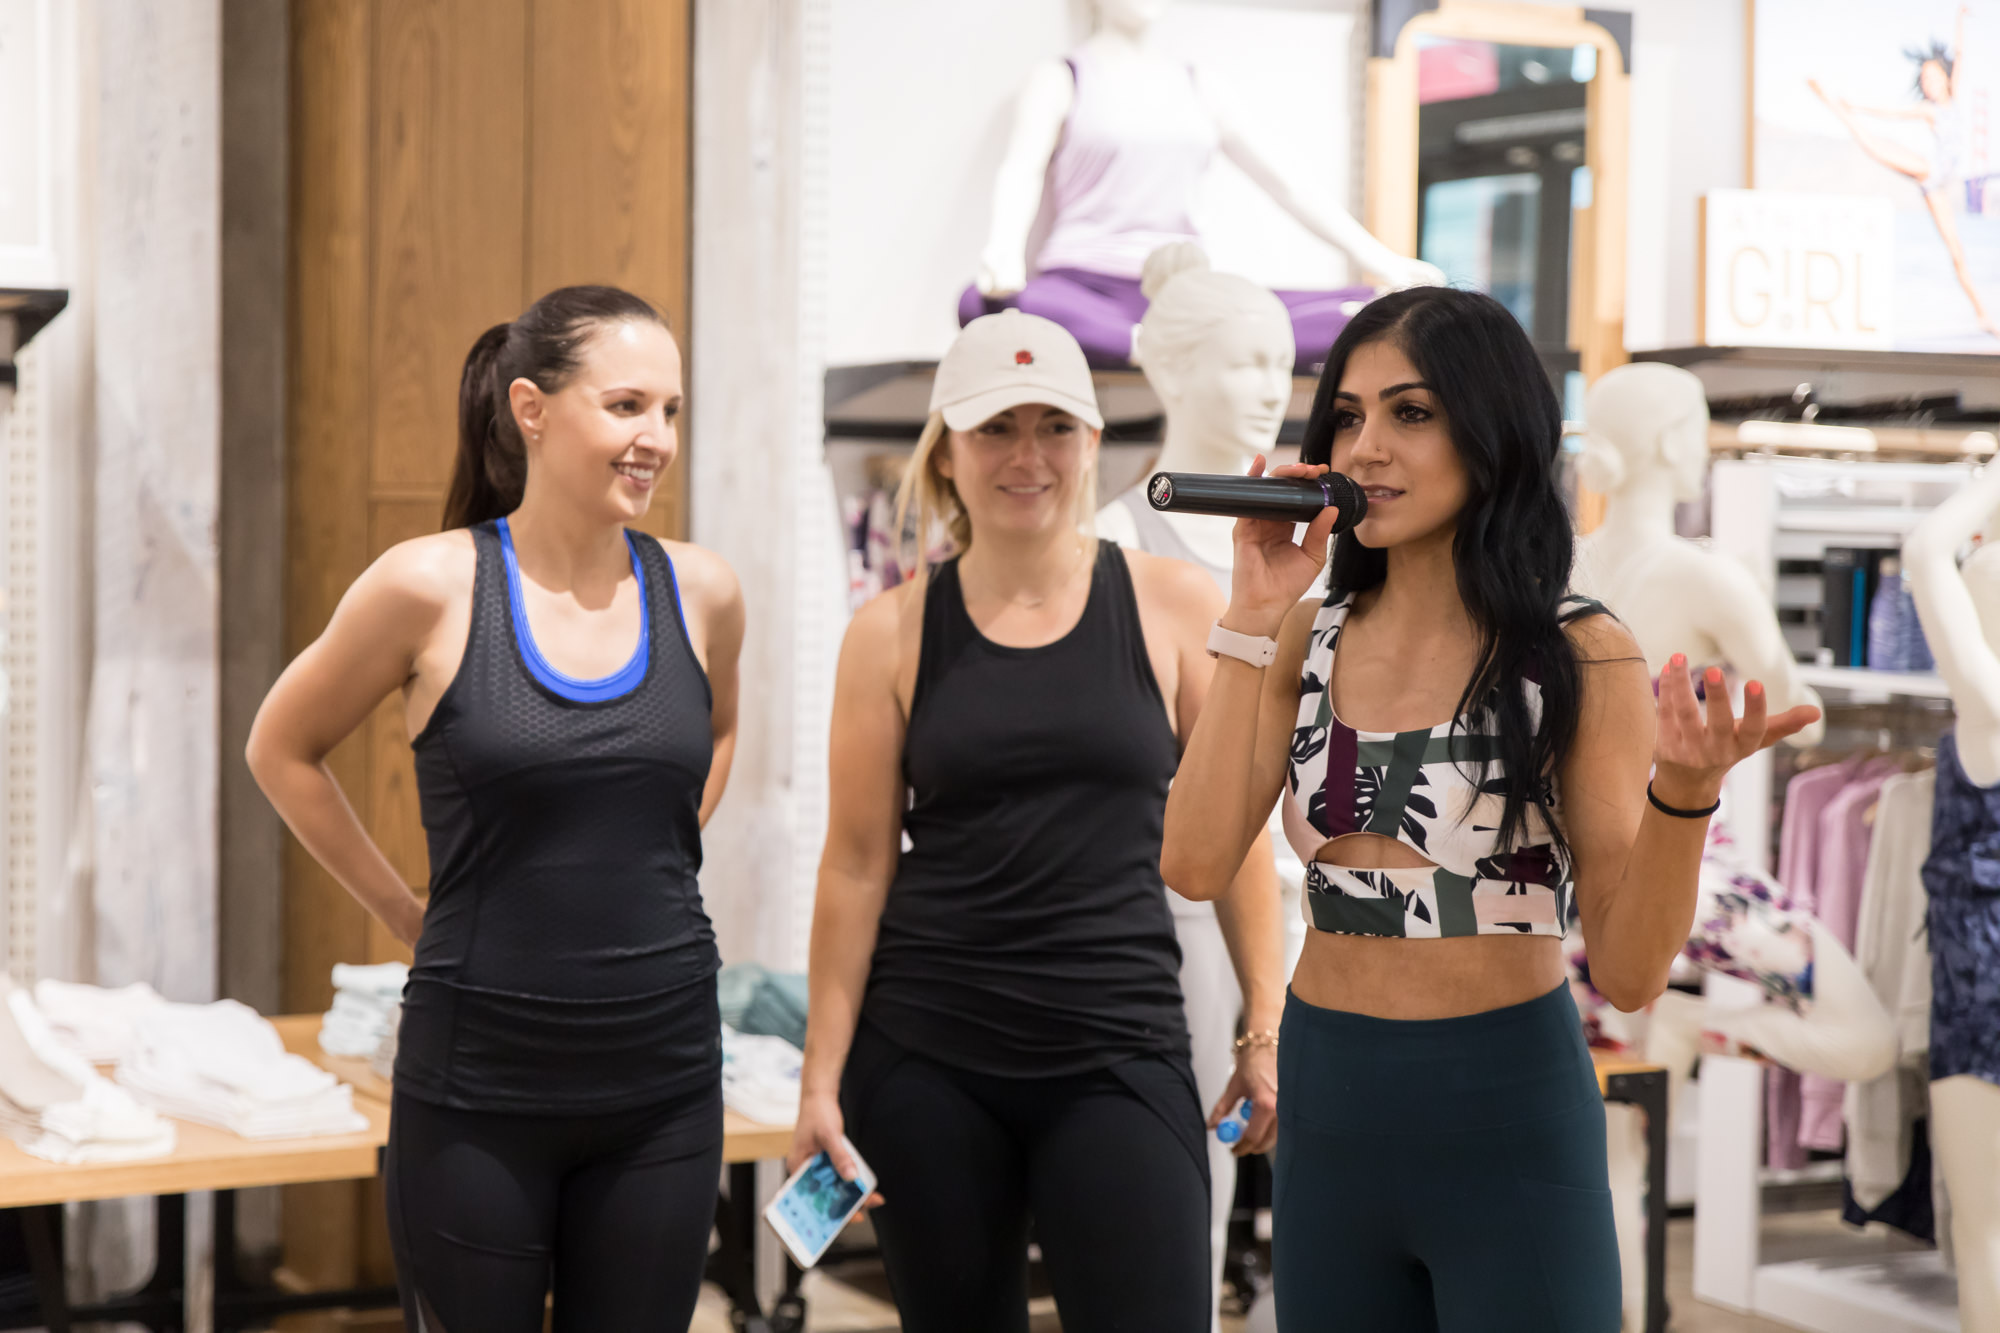 pegactive-thanking-people-for-coming-to-pop-up-fitness-workshop-in-store-athleta-westfield-valley-fair-mall-san-jose.jpg